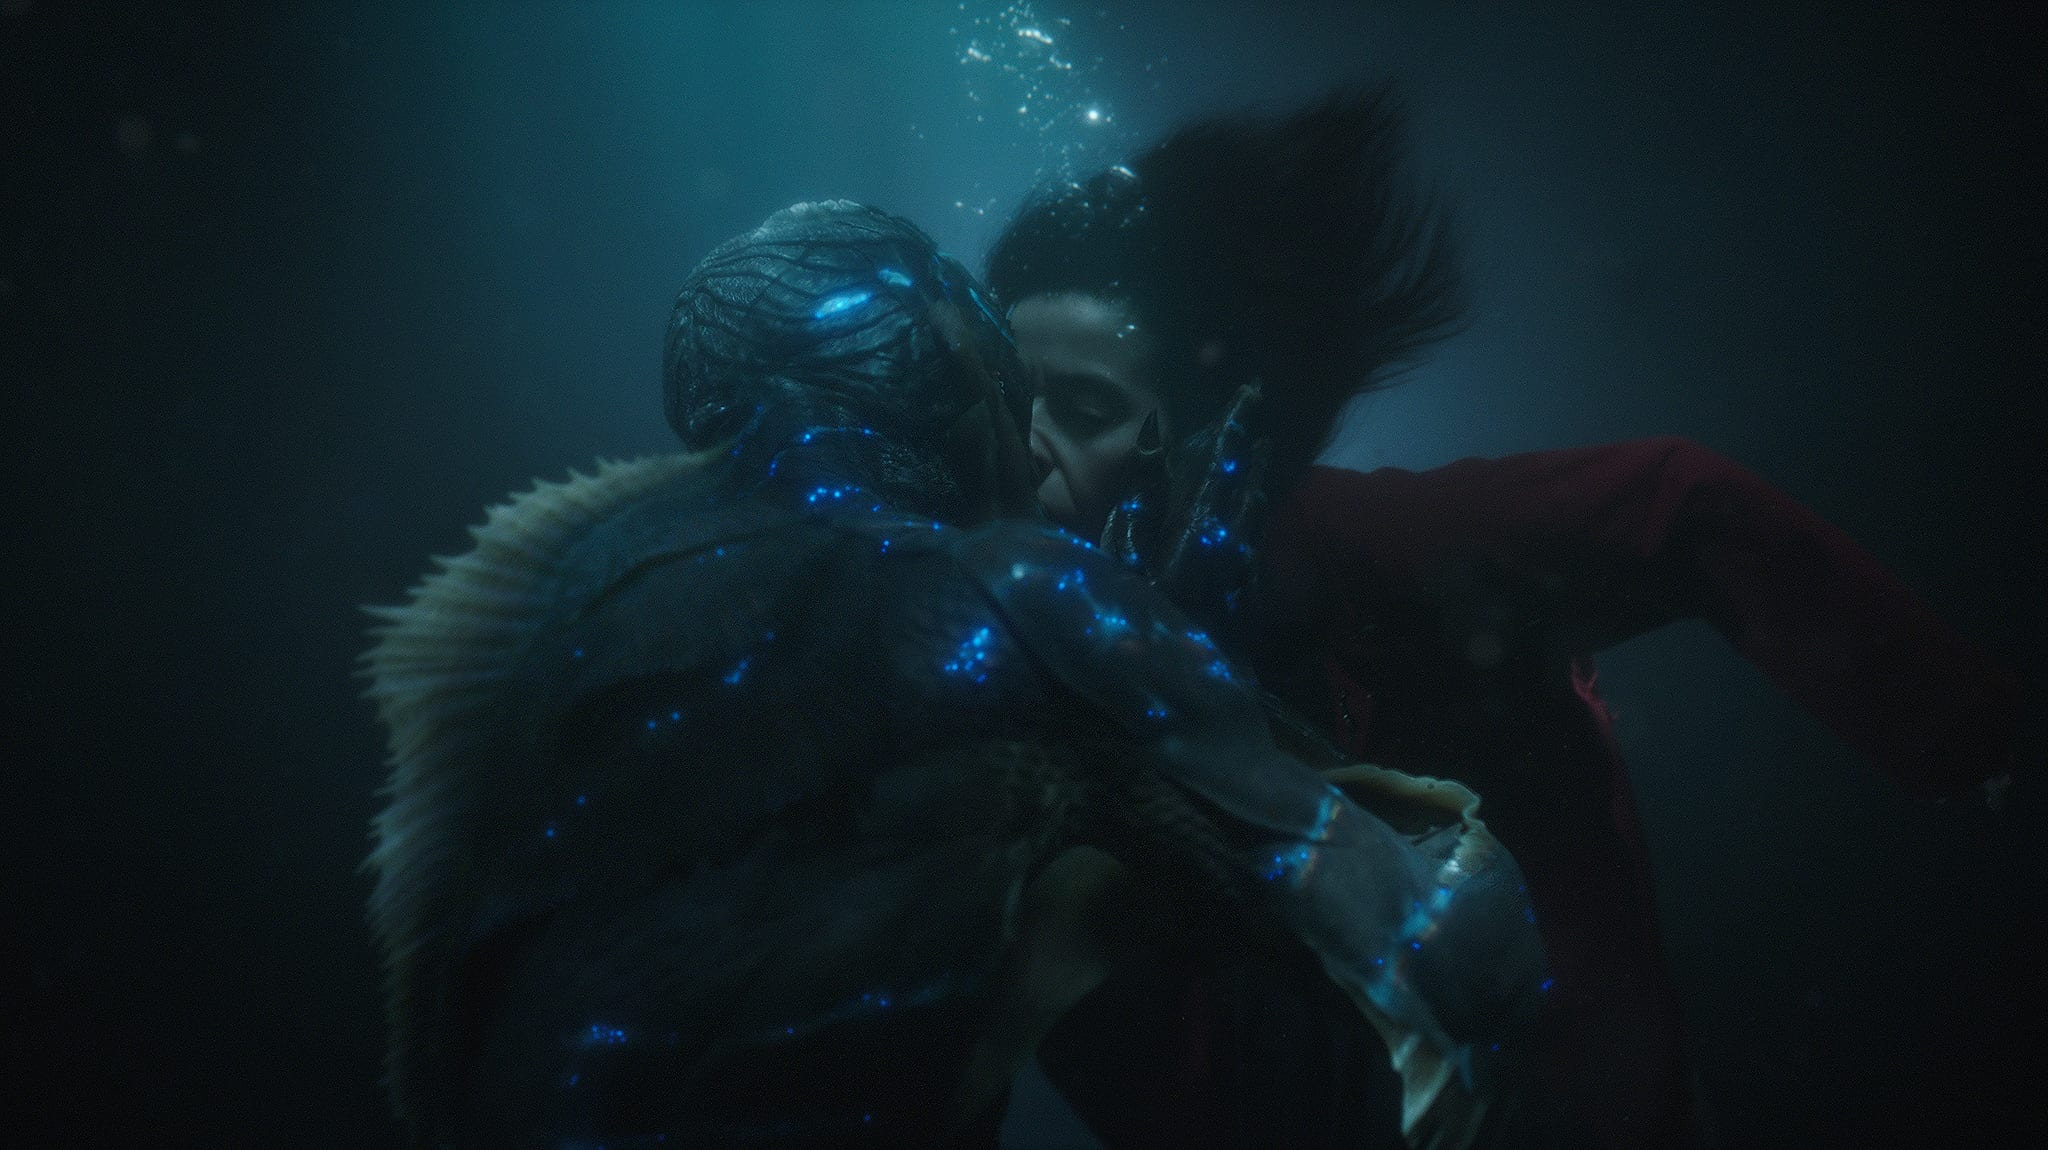 the shape of water, golden globes, drama, film